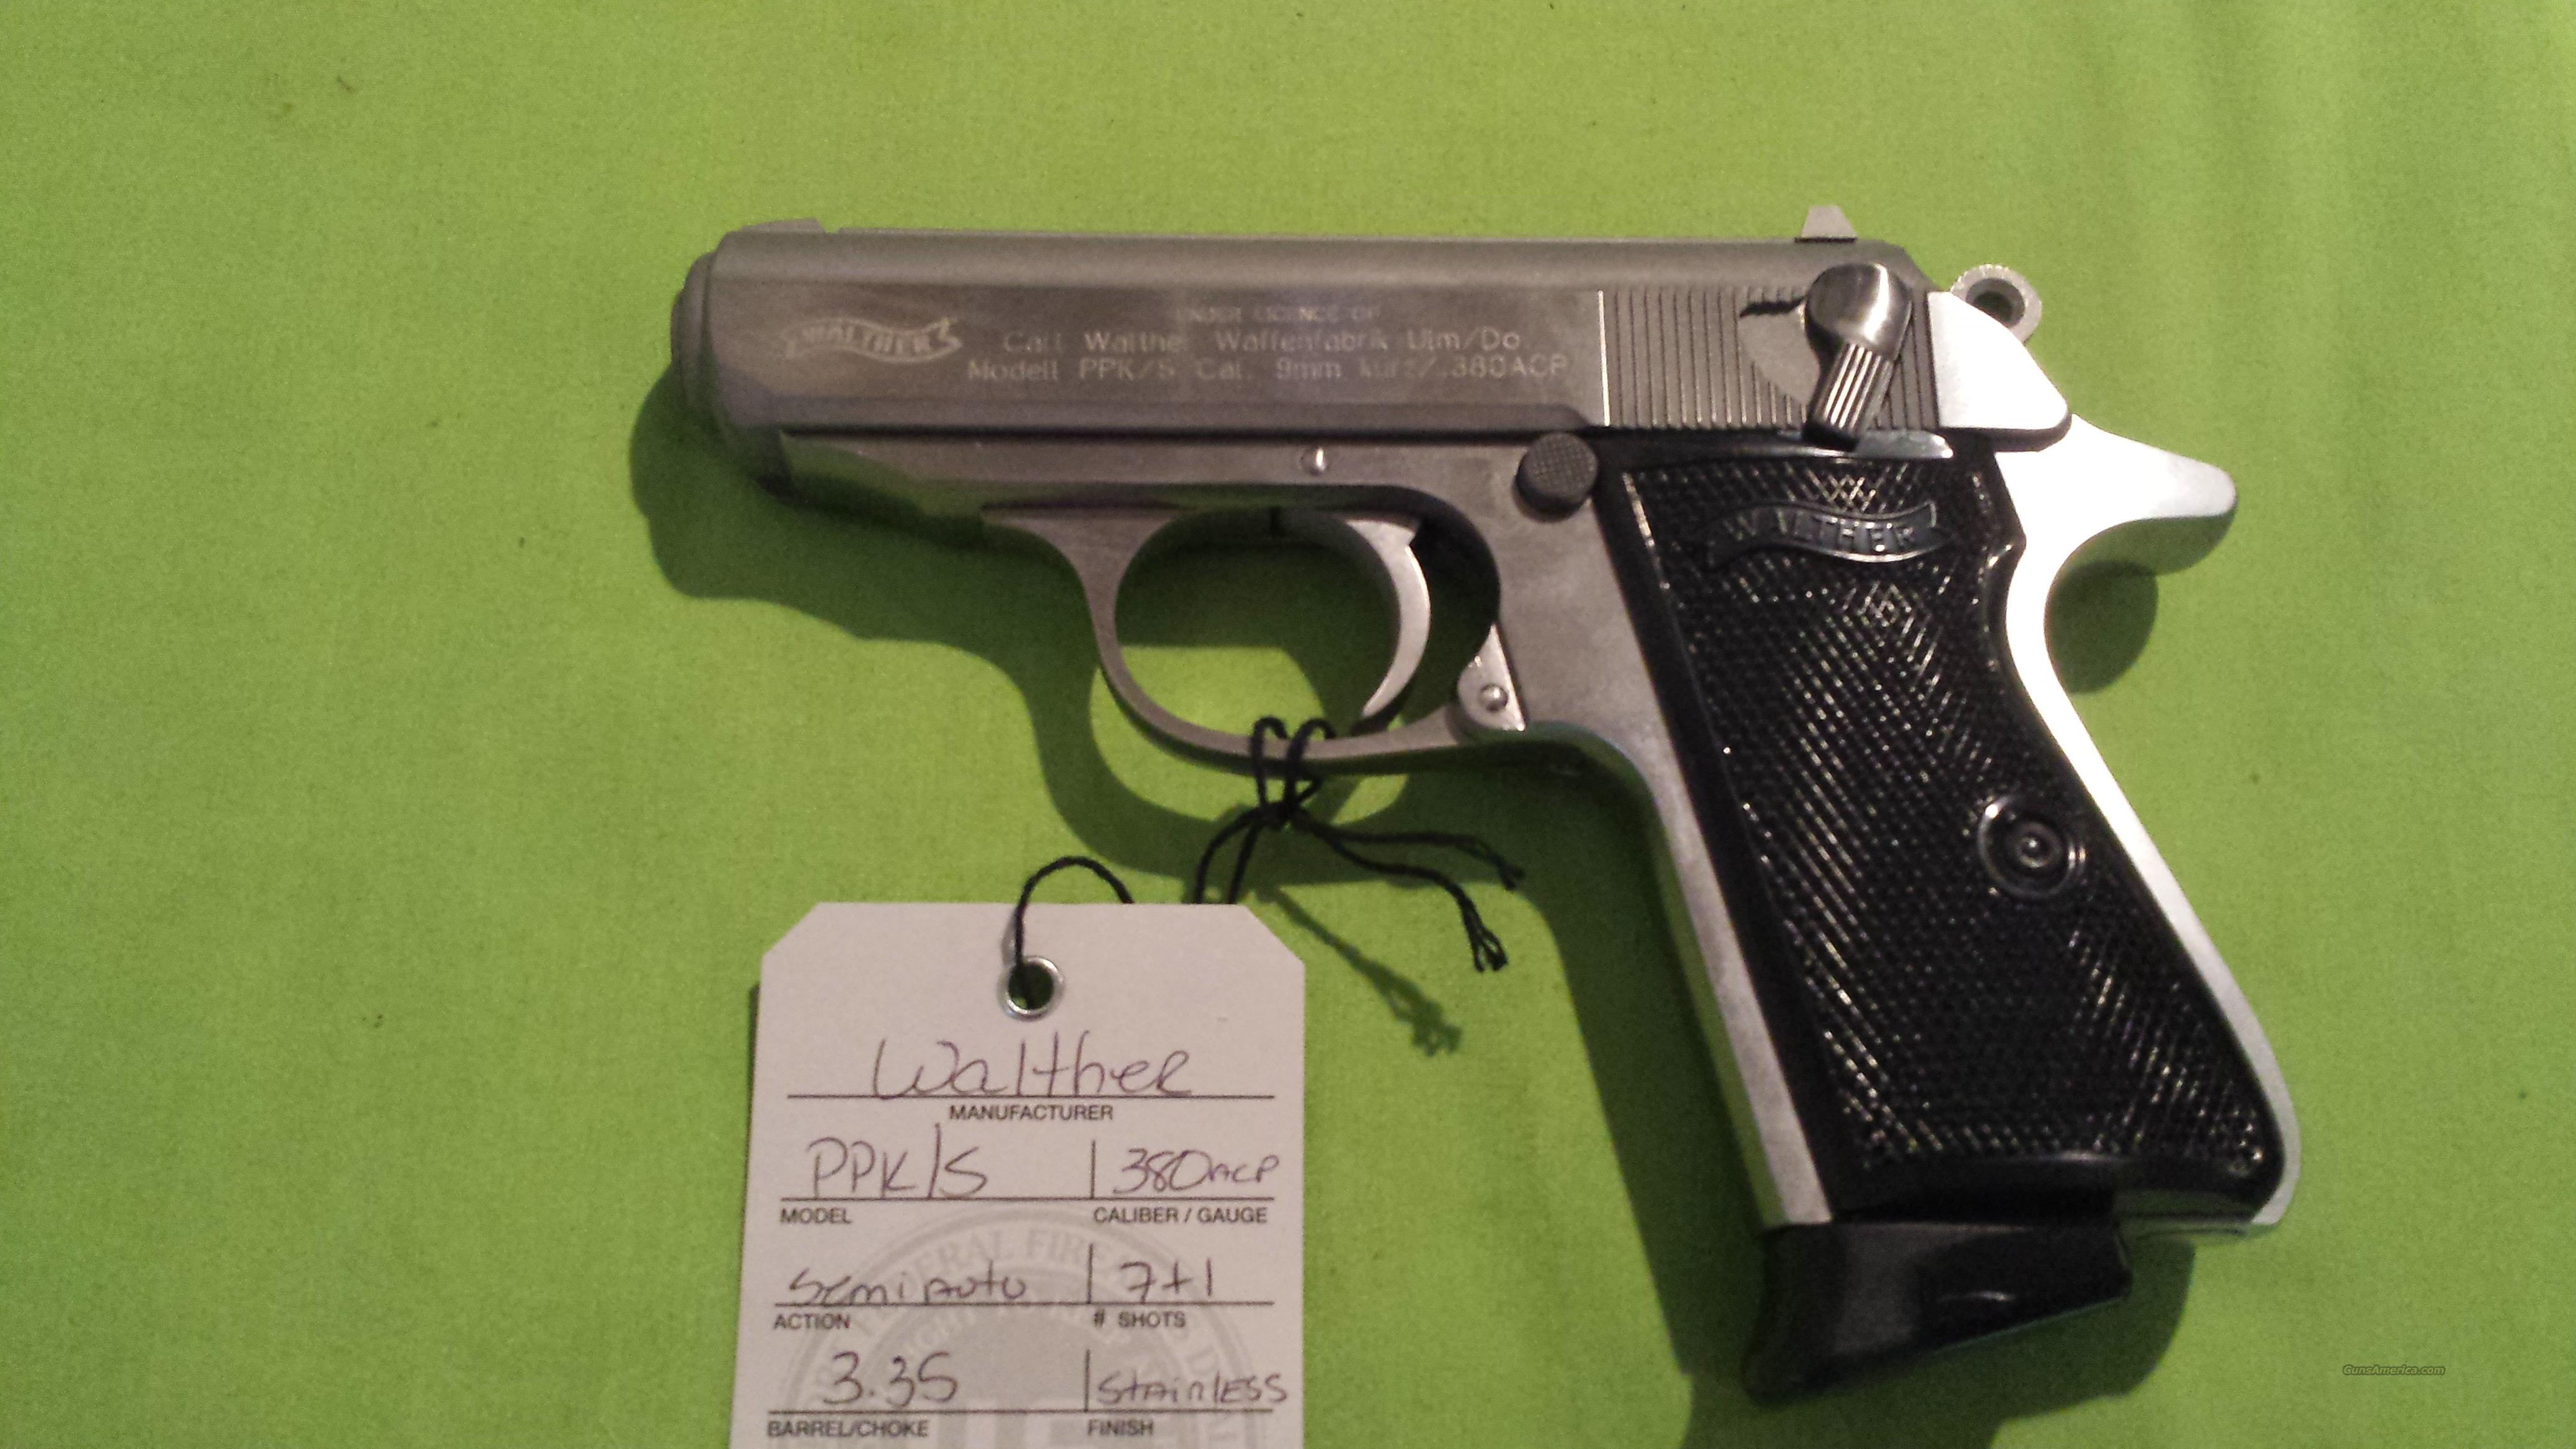 "WALTHER PPK/S PPKS 380ACP 3.35"" STAINLESS 7RD  Guns > Pistols > Walther Pistols > Post WWII > PPK Series"